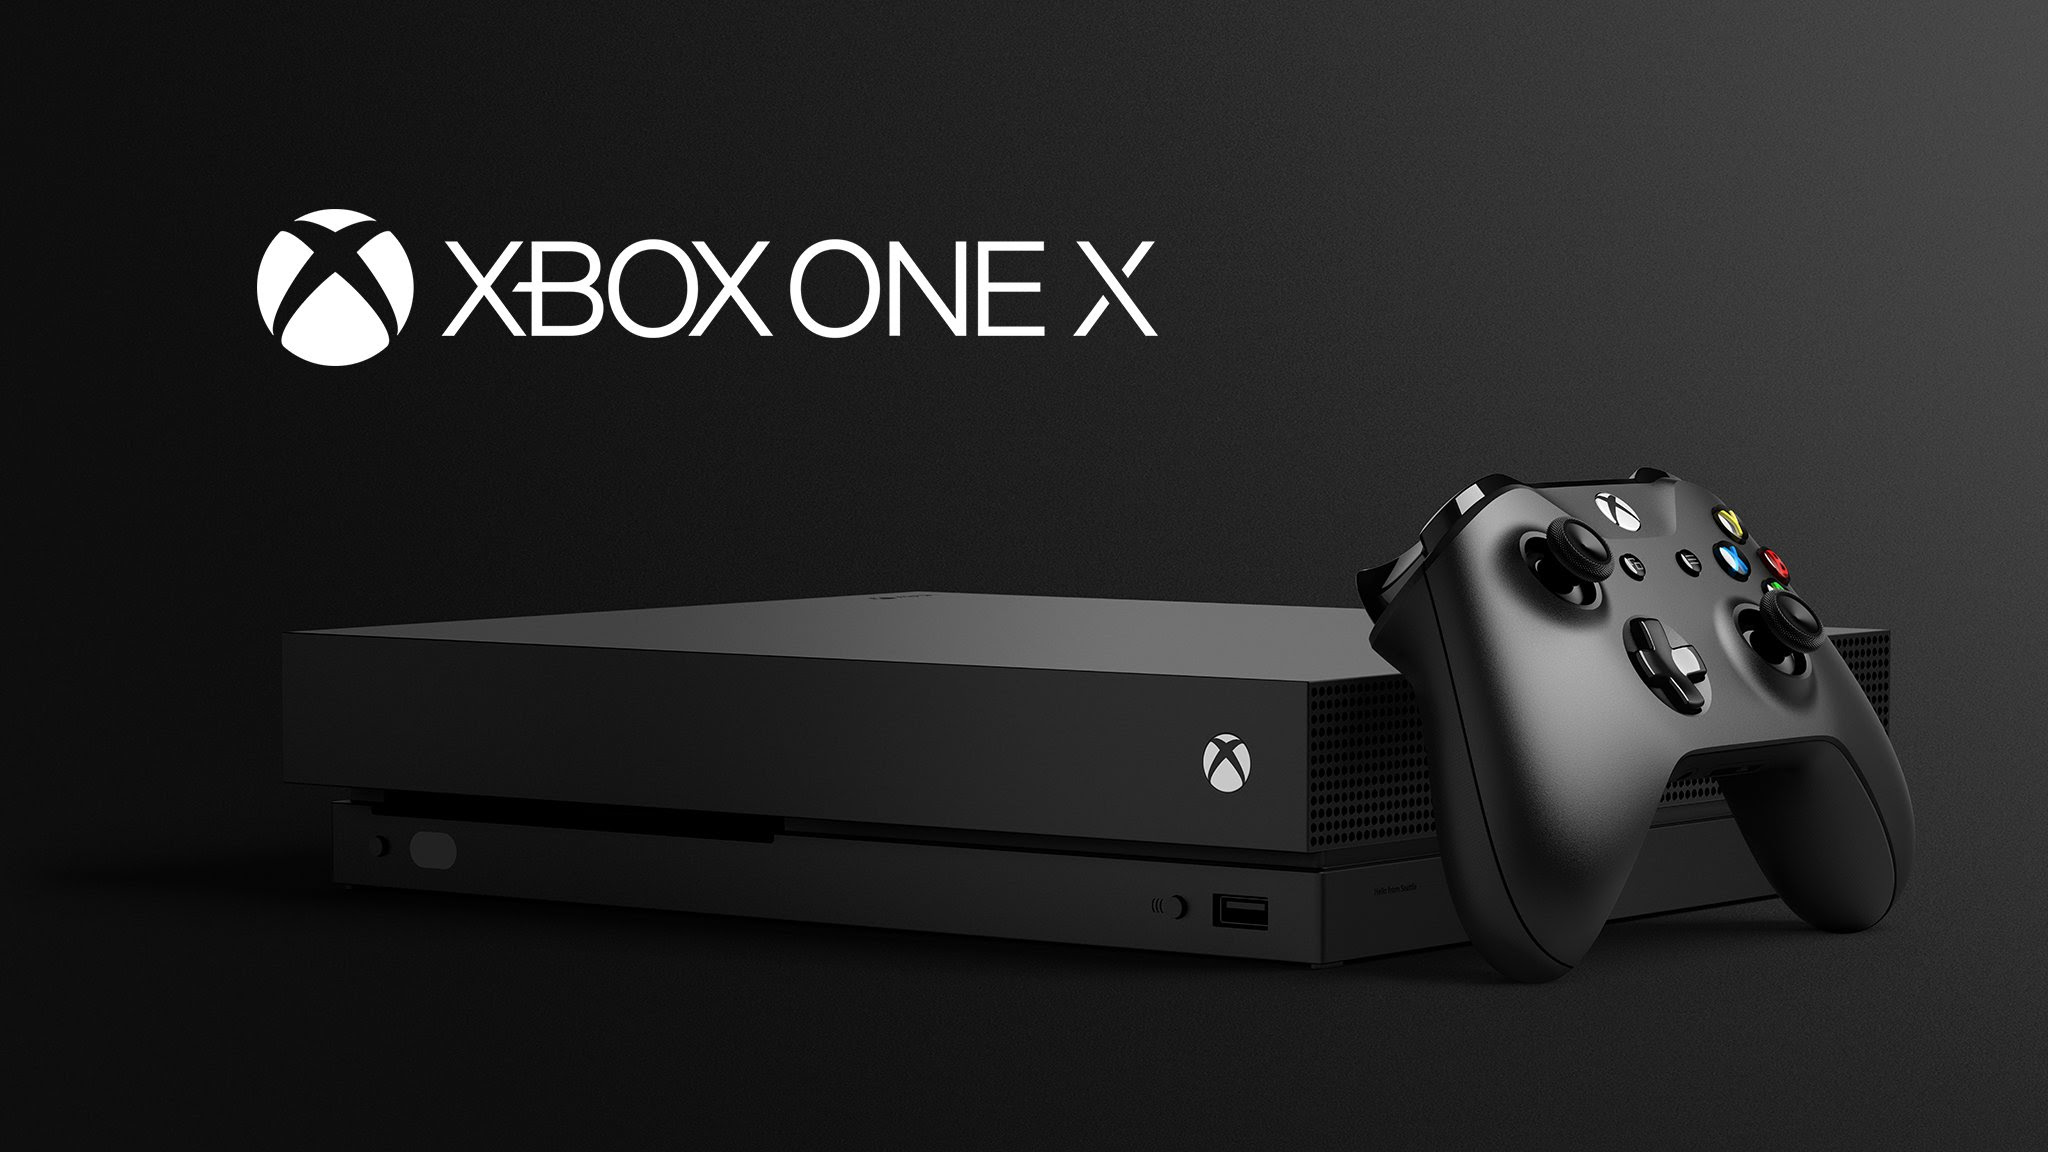 The Xbox One X is a terrible name and they learned nothing from the Wii U screenshot